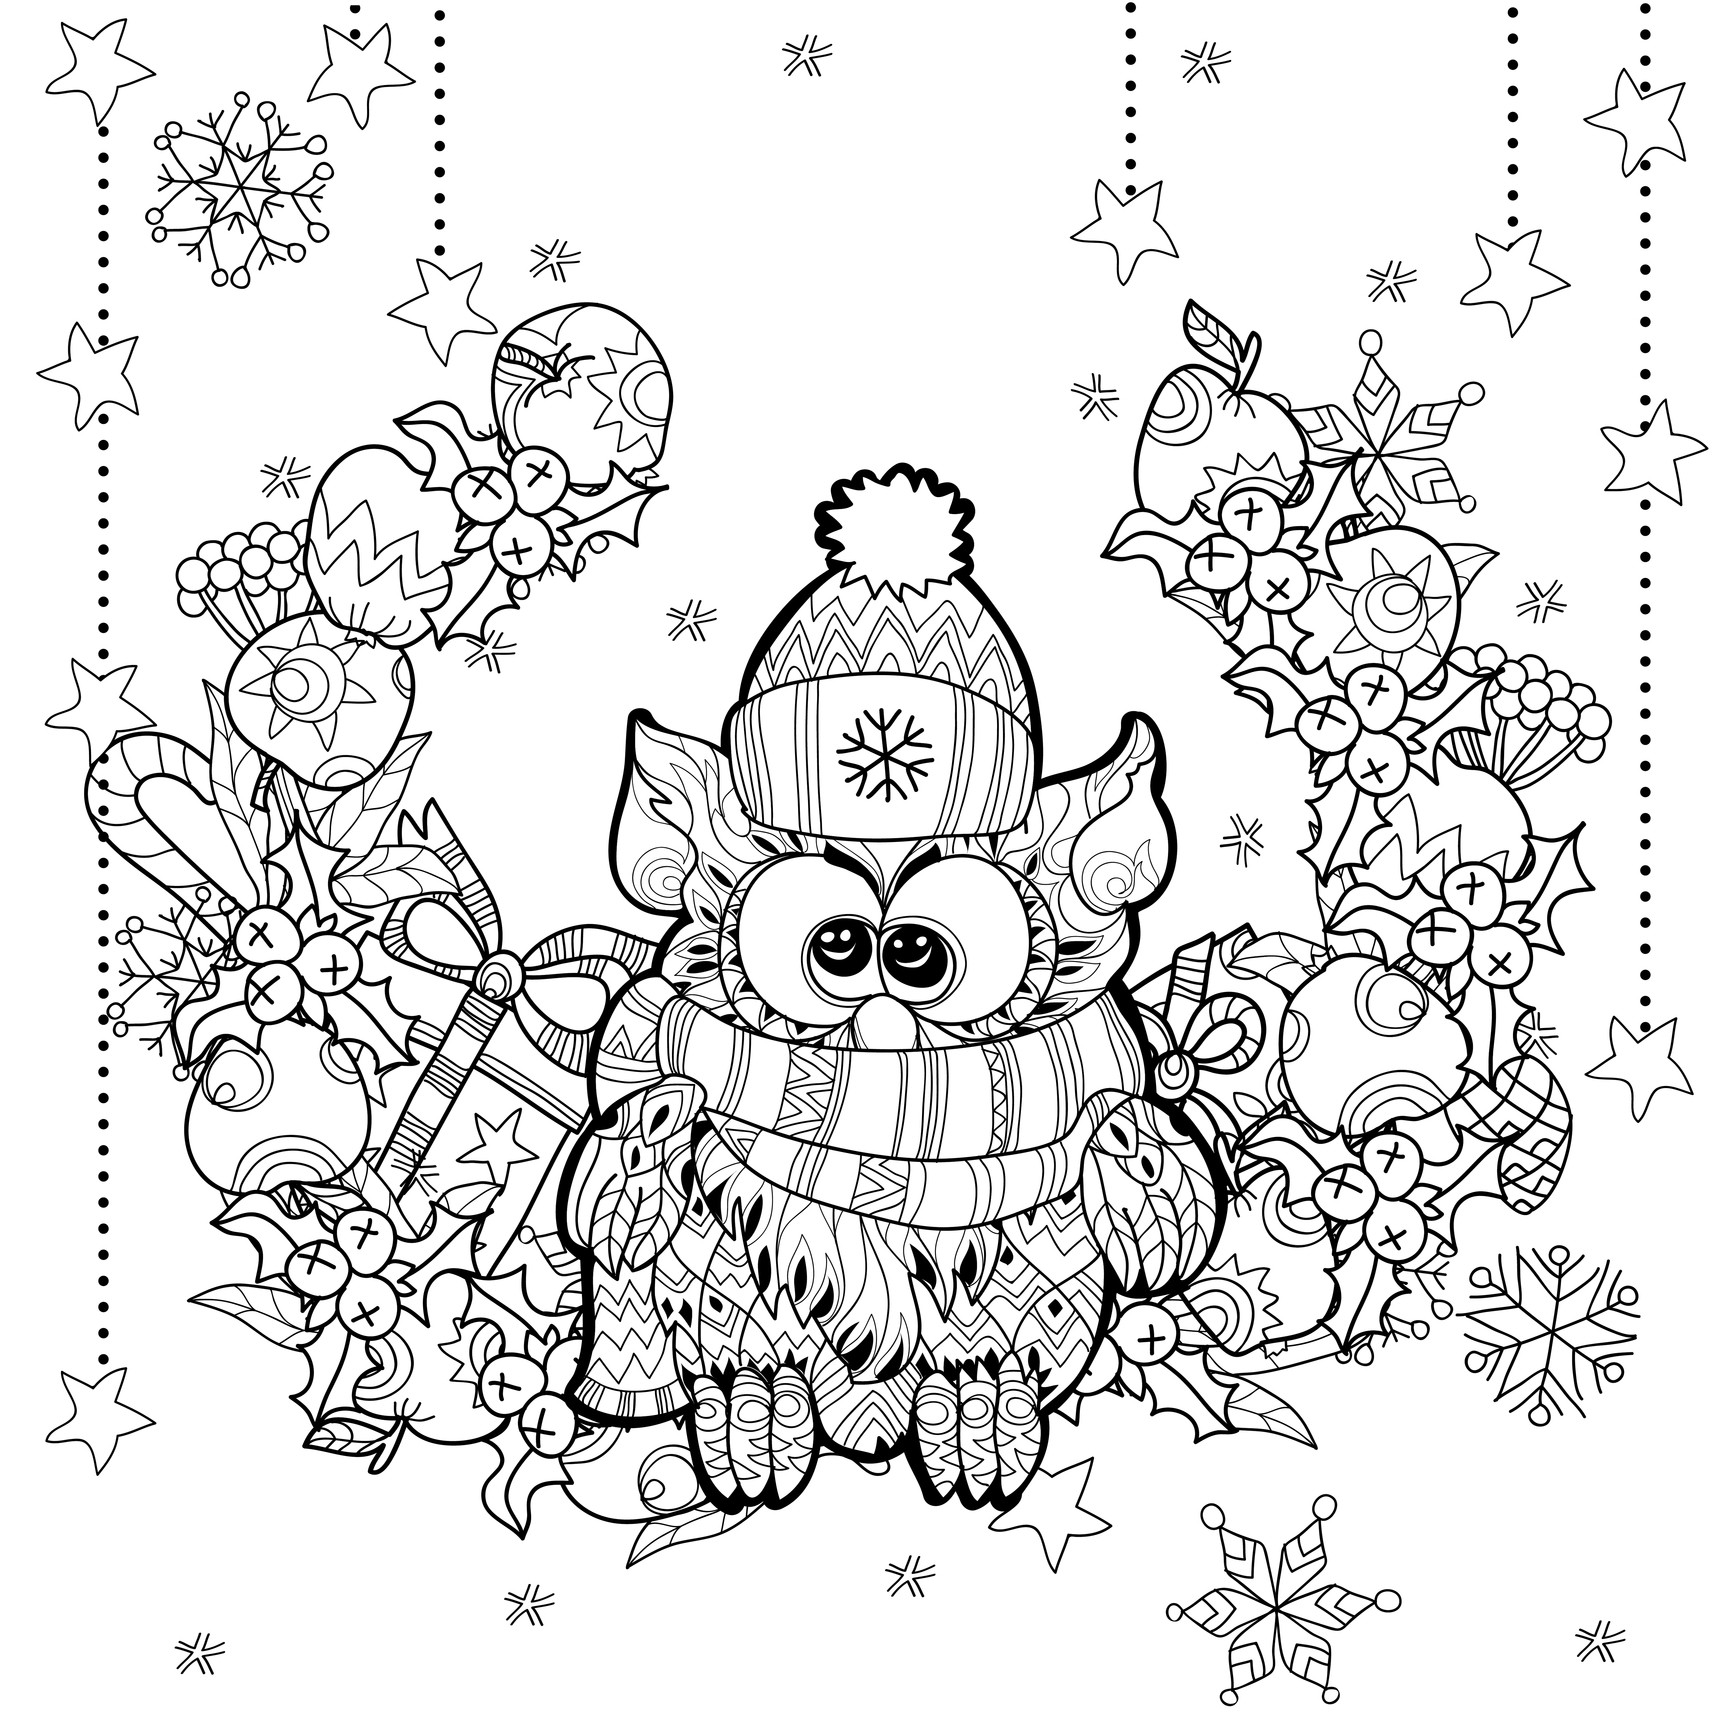 Christmas Coloring Pages With Reindeer Funny For Adults 4 Wordsare Me